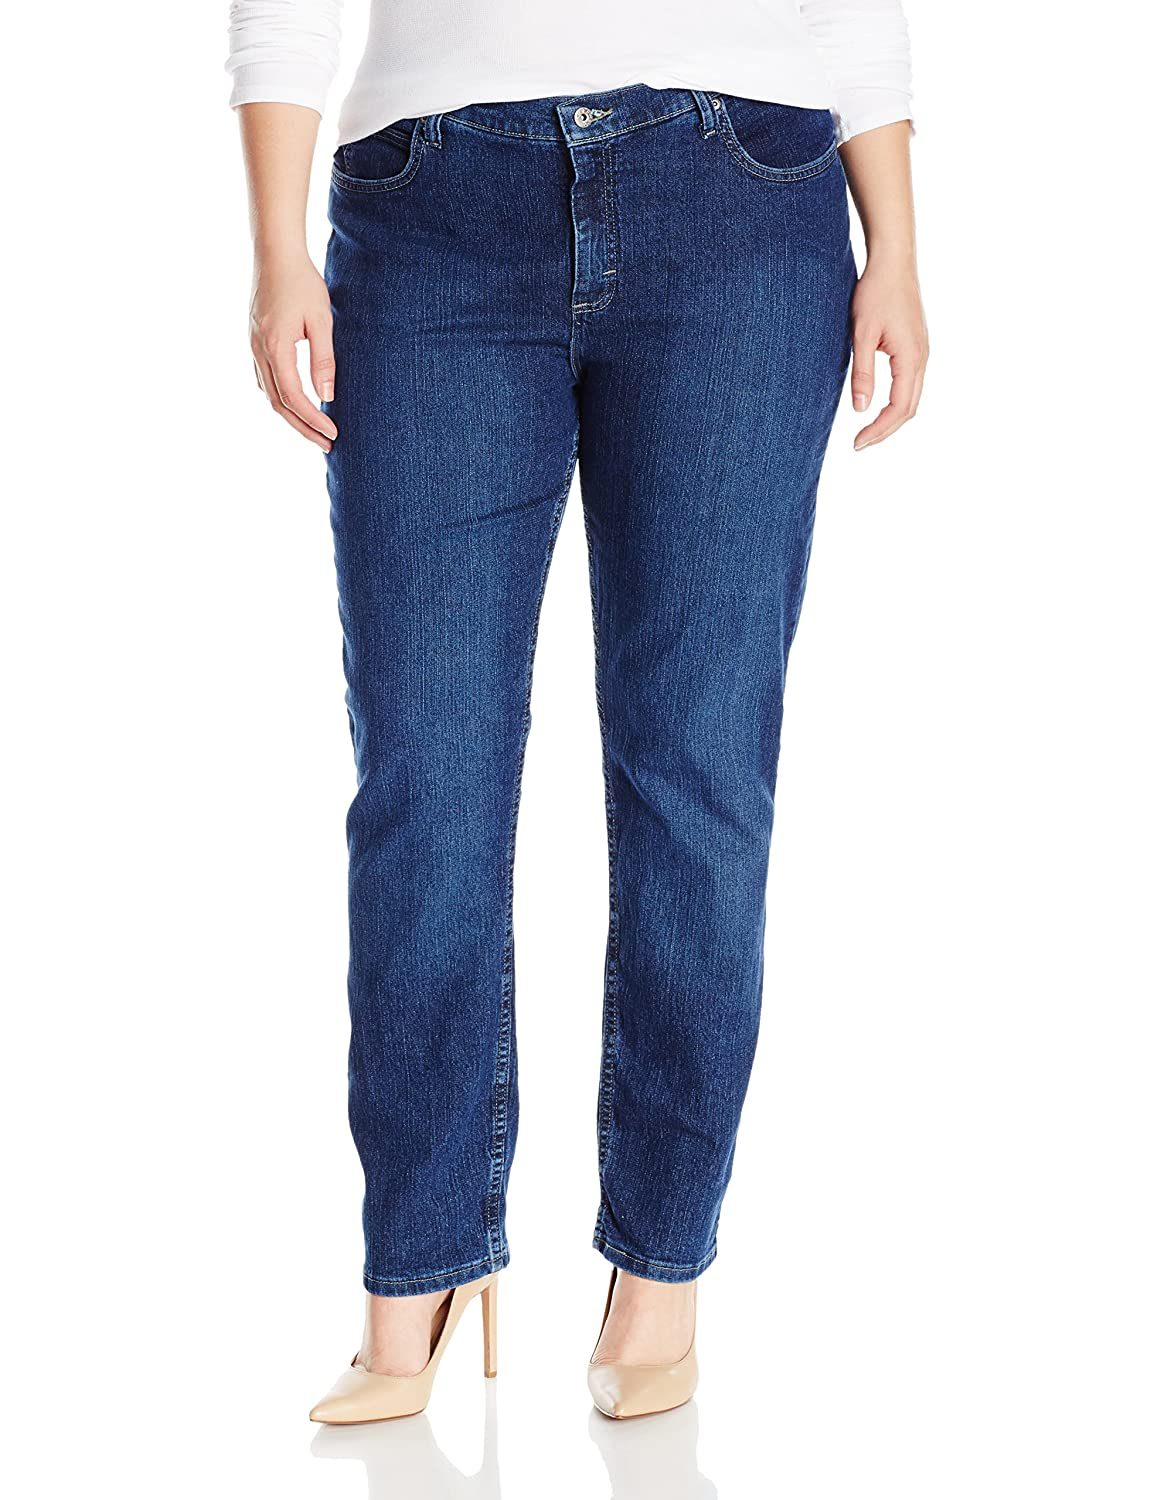 Riders by Lee Indigo Women's Plus Size Joanna Classic 5 Pocket Jean, ZFPJC